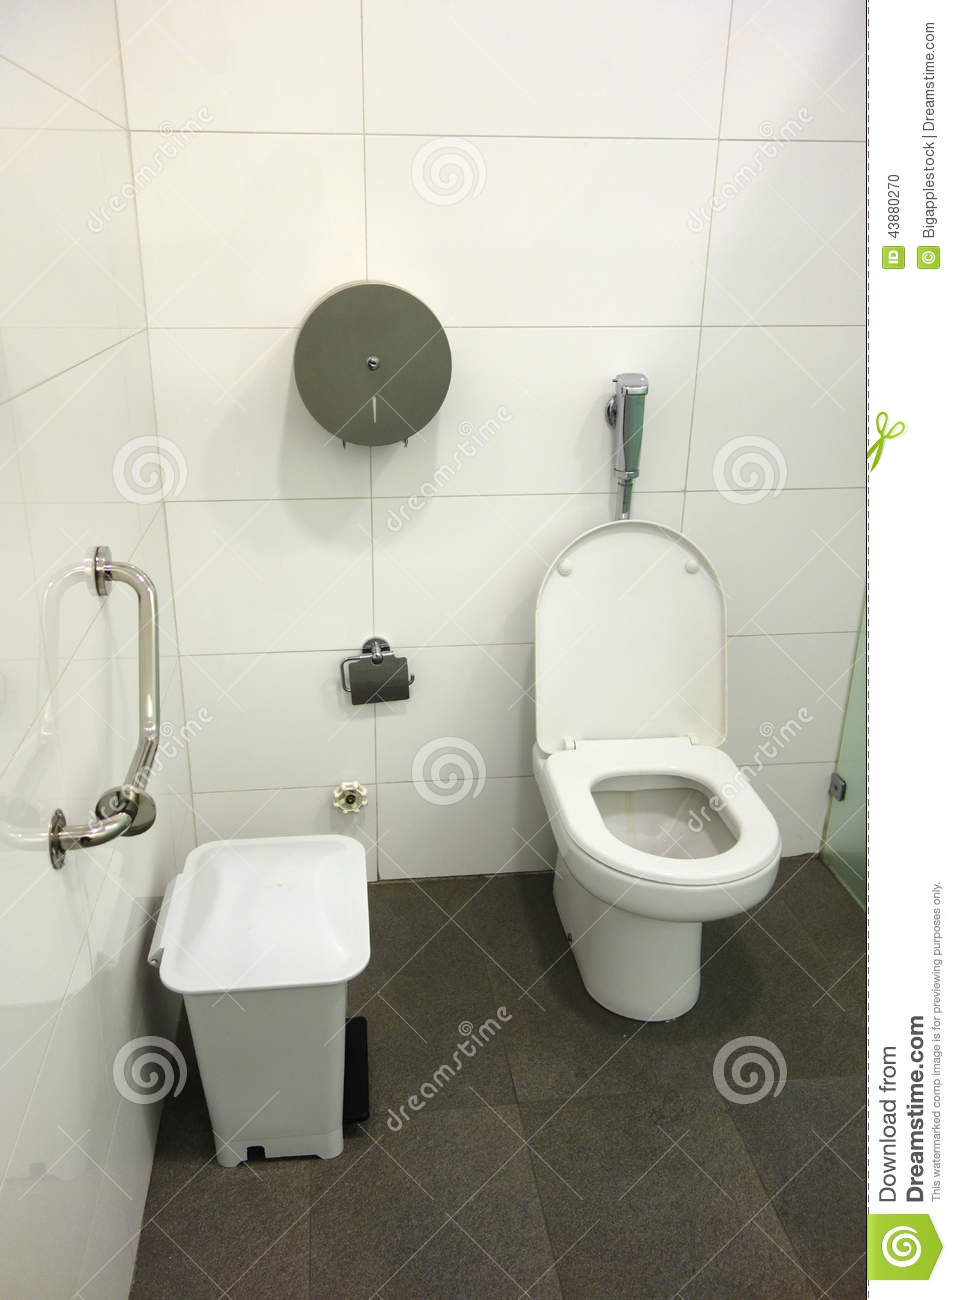 Restroom Stall Stock Photo Image 43880270